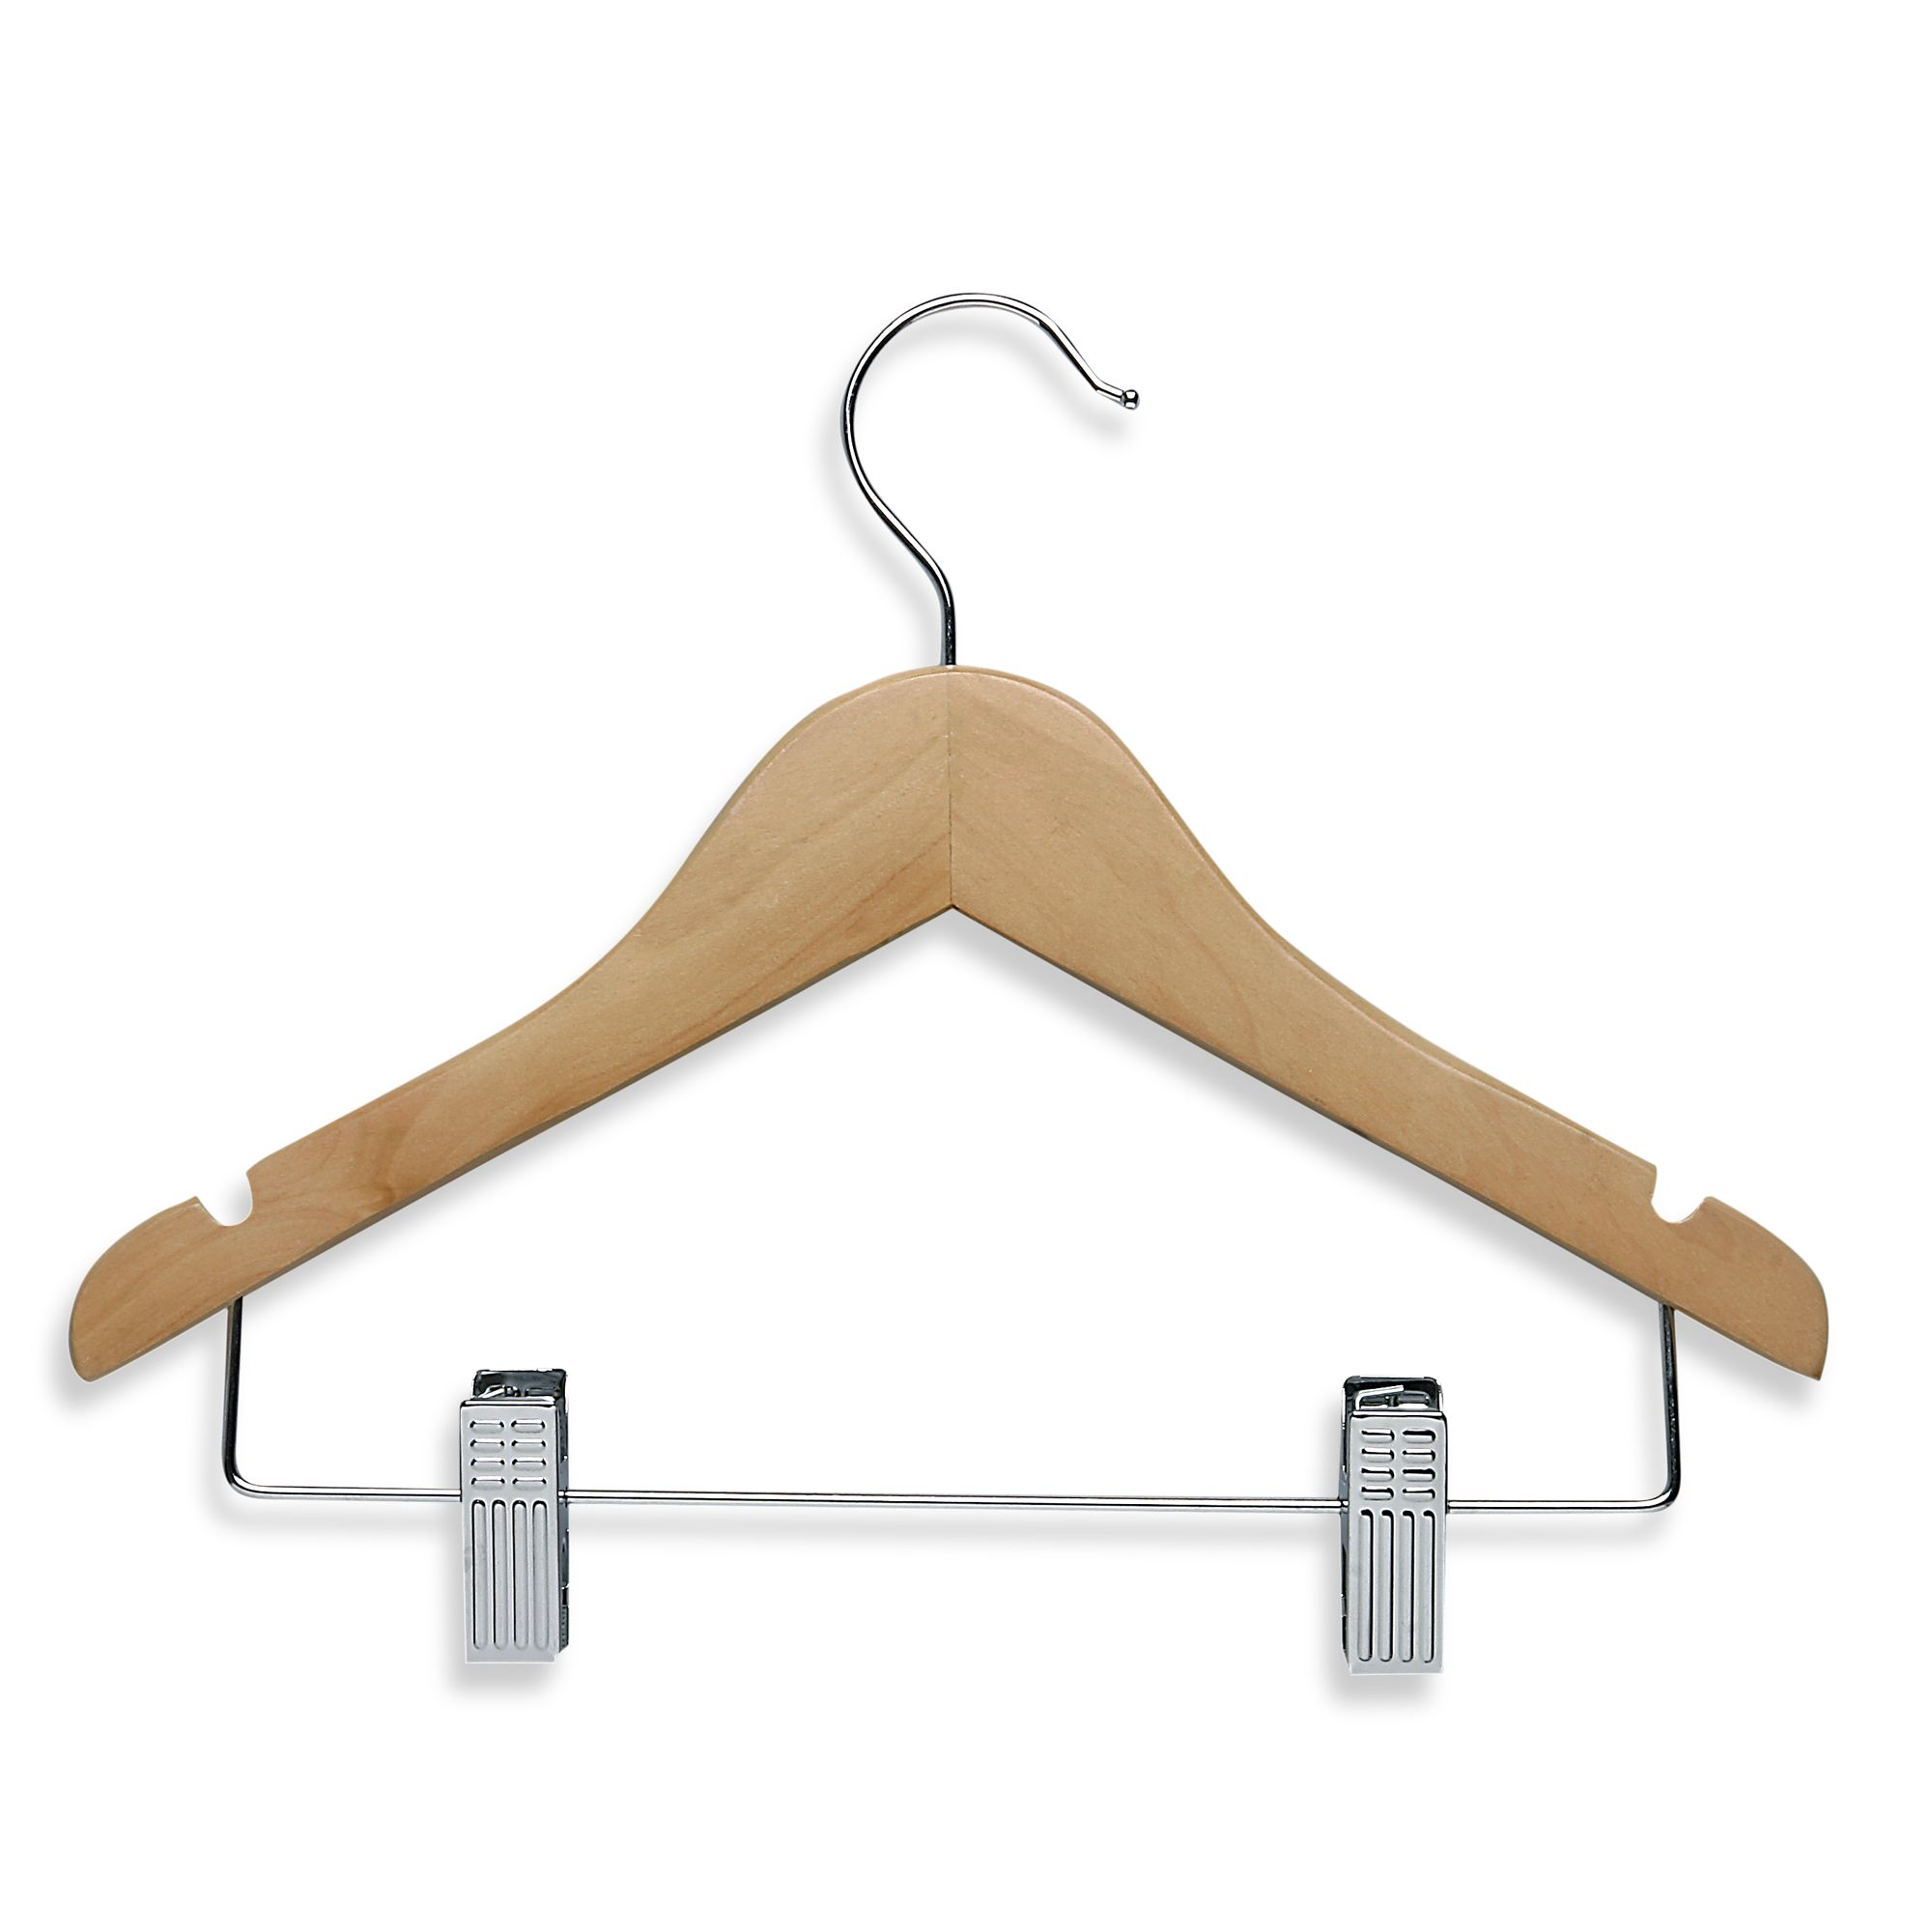 Metal Suit Hangers Hangers With Metal Clips